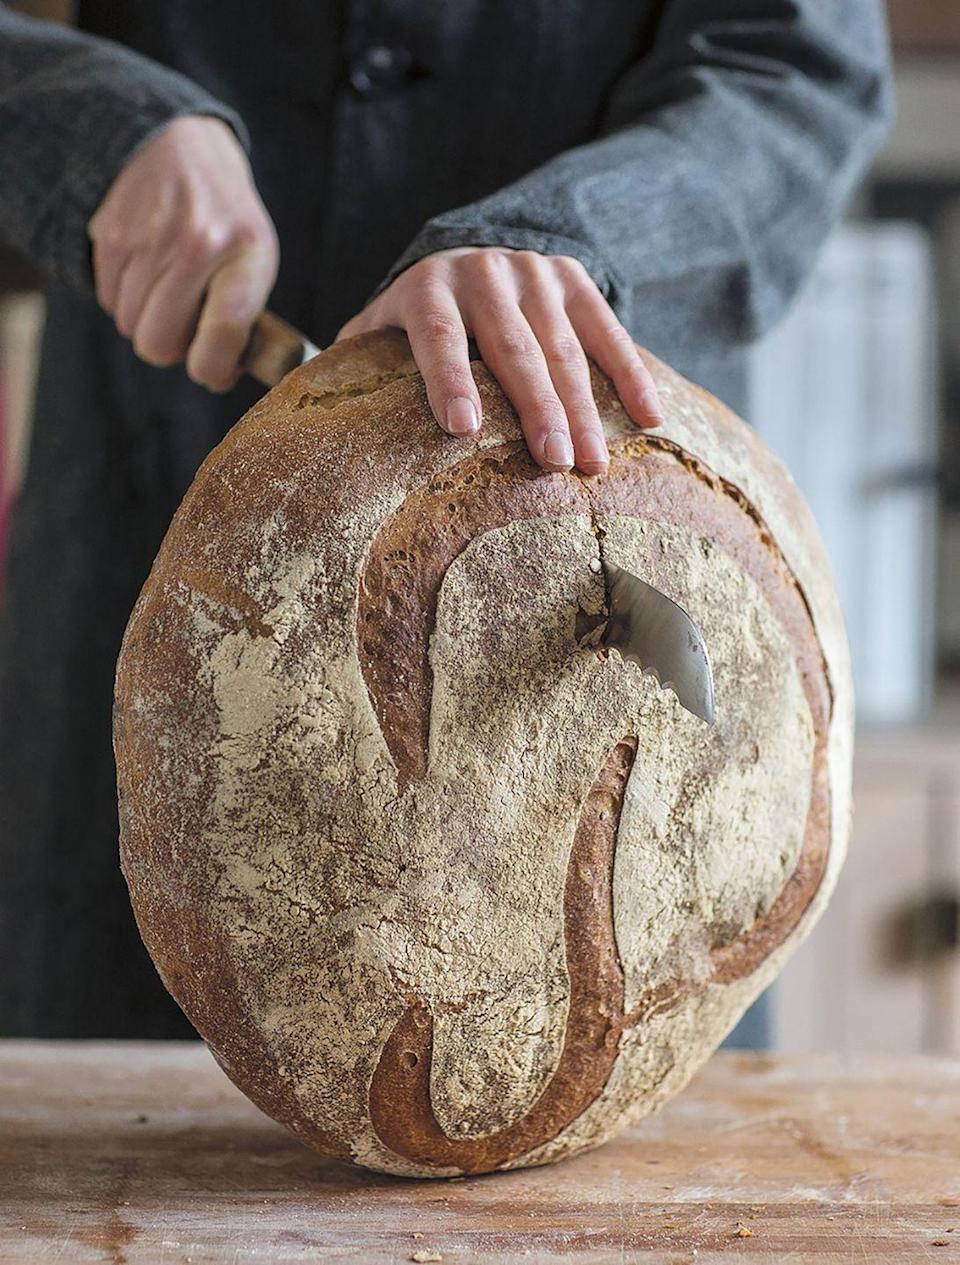 """<p>There's no better place in Paris for a tartine, or open-faced sandwich, than <a href=""""https://www.poilane.com"""" rel=""""nofollow noopener"""" target=""""_blank"""" data-ylk=""""slk:Comptoir Poilâne"""" class=""""link rapid-noclick-resp"""">Comptoir Poilâne</a> in the heart of the 6th arrondissment and housed in an annex to the world-renowned bakery Poilâne. Here, you can lunch on a long slab of miche (the sourdough precursor to the French baguette) with a classic topping of smoked salmon and dill—or an utterly contemporary version, with lacto-fermented vegetables and Roquefort (perhaps with a side of miso soup dotted with grains), or, a favorite of mine, thinly sliced Wagyu beef with honey mustard. Apollonia Poilâne's menu couldn't be more of-the-moment, but the extraordinary bread is still made downstairs in the wood-fired oven that her father and grandfather used long before she was born. </p>"""